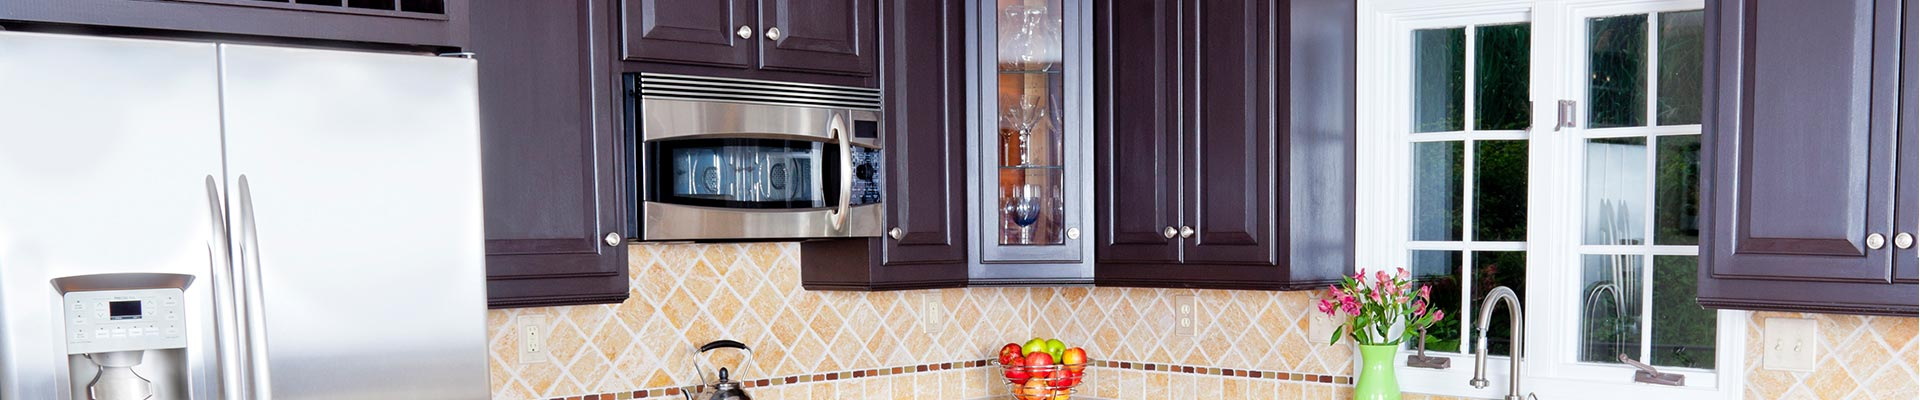 How Much Is It To Refinish Cabinets A Helpful Guide For Homeowners